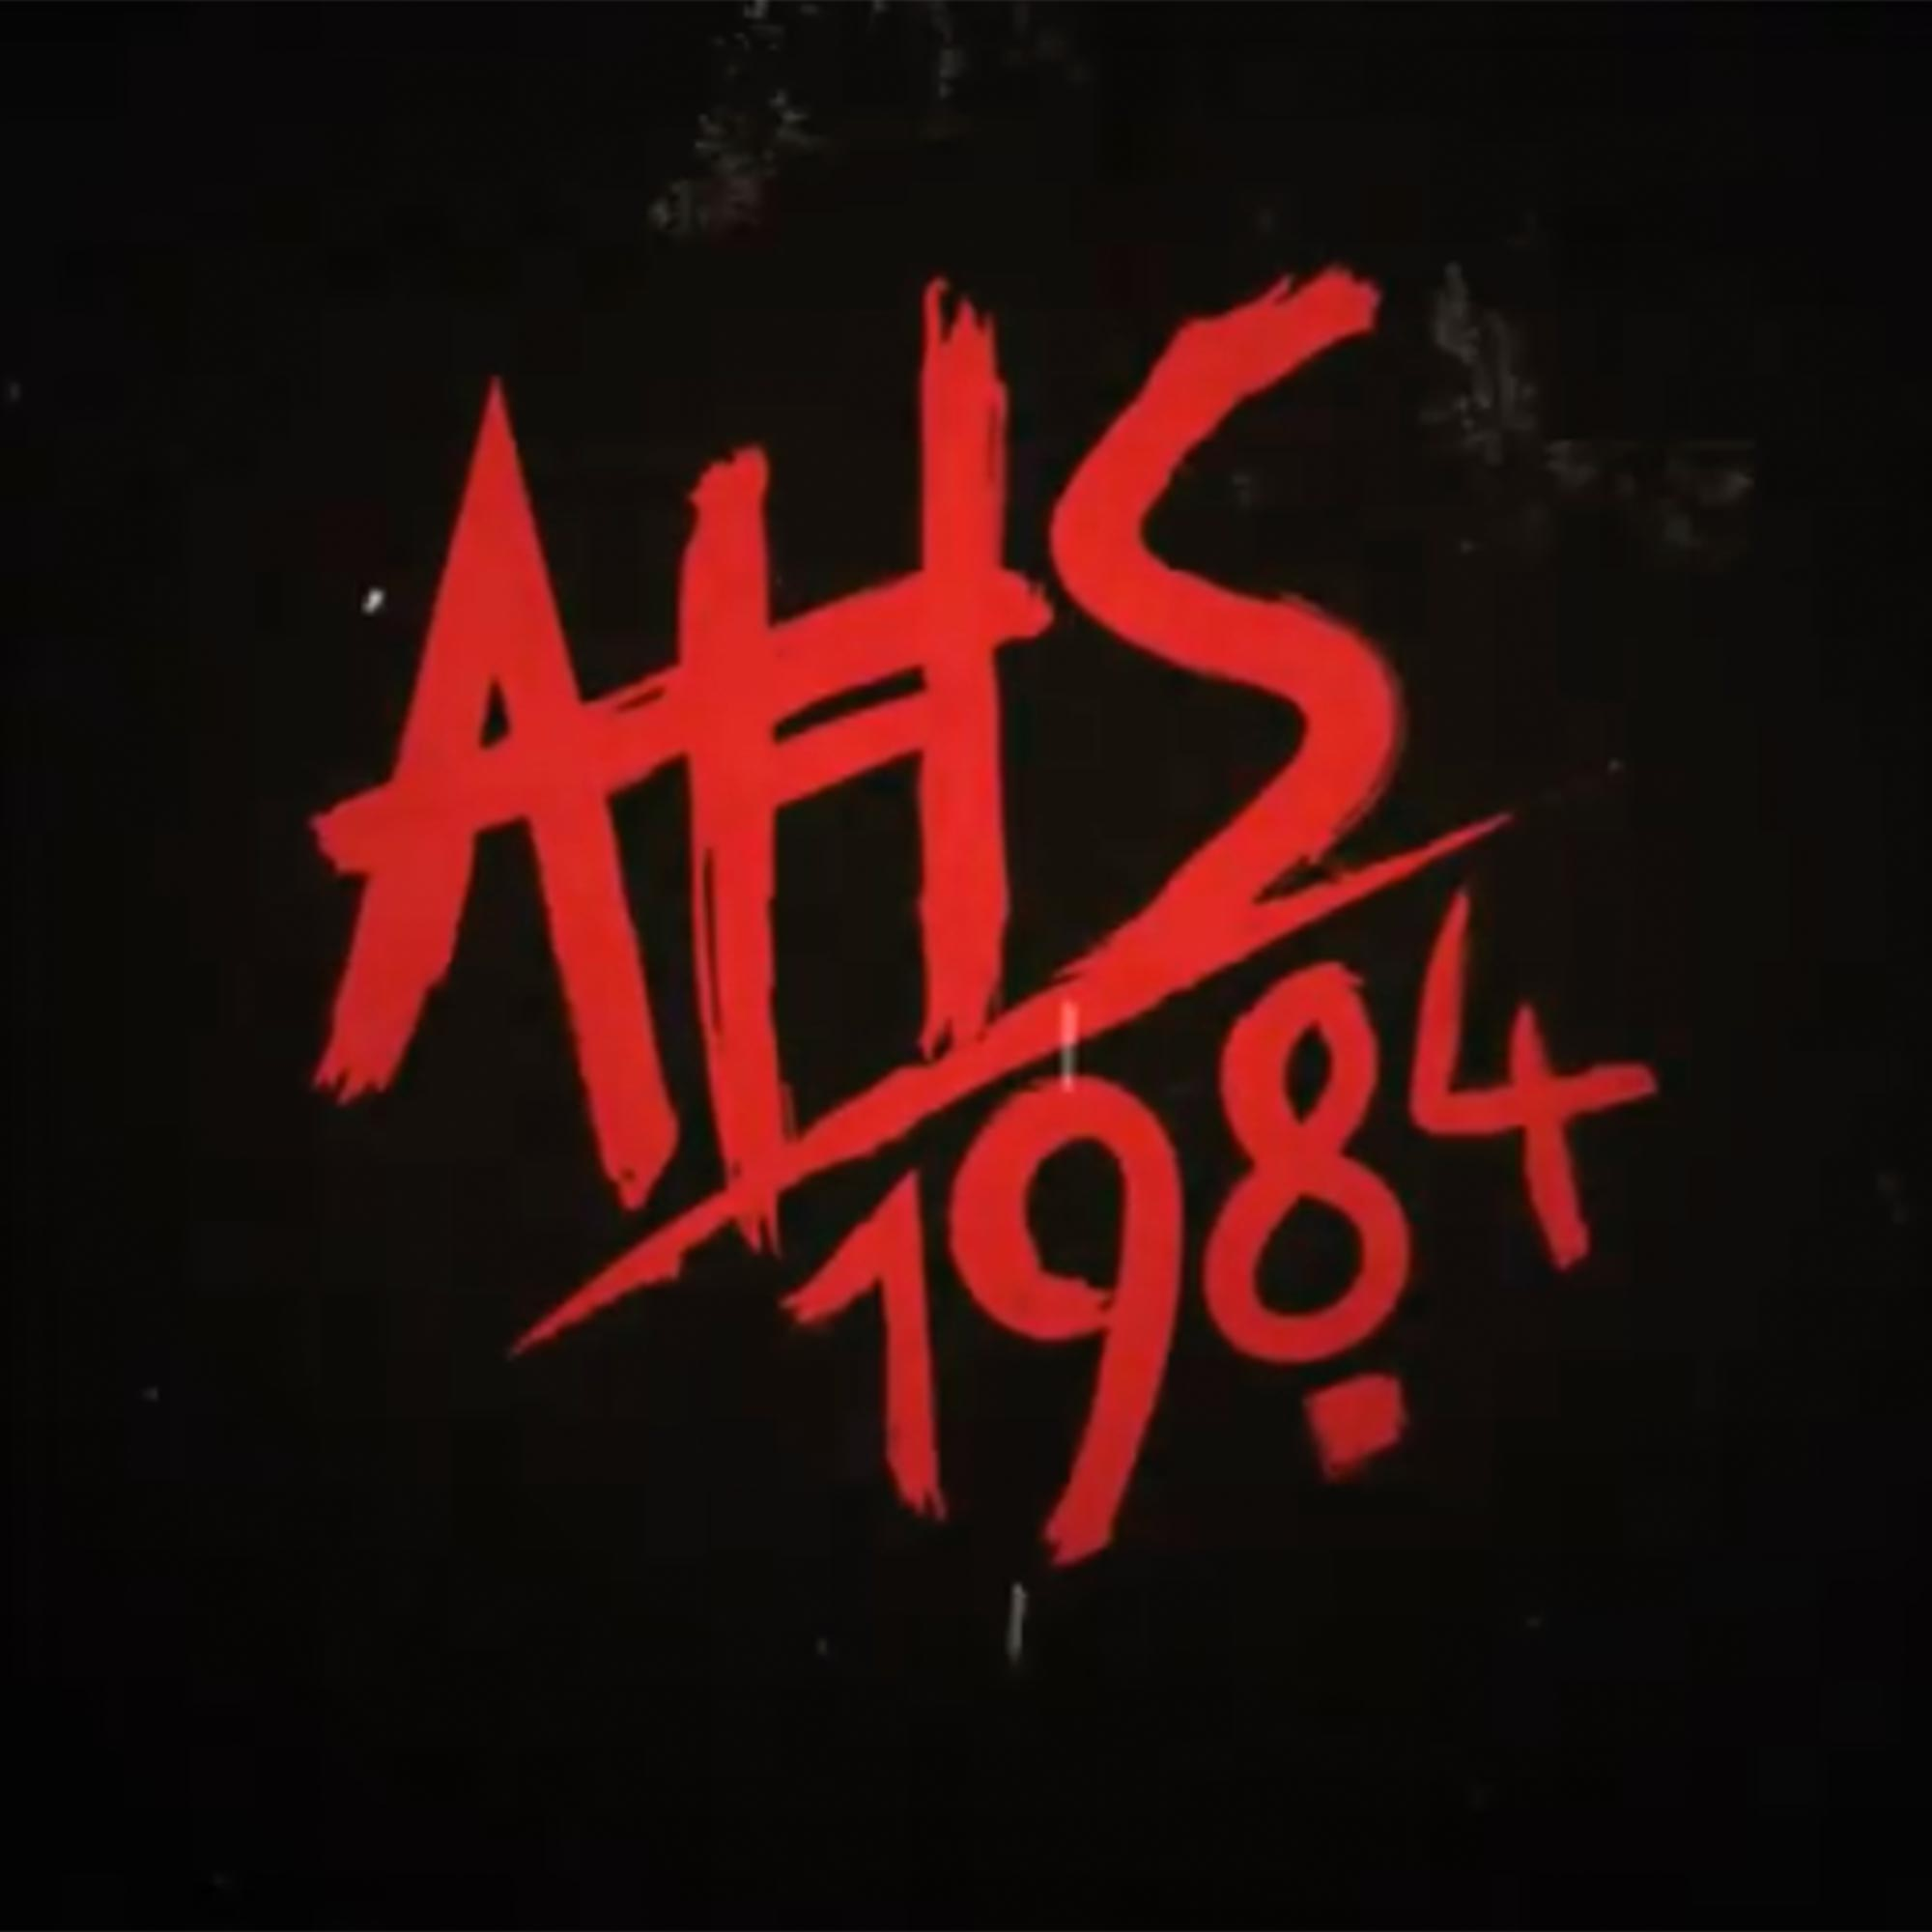 American Horror Story season 9 is a slasher movie homage called 1984